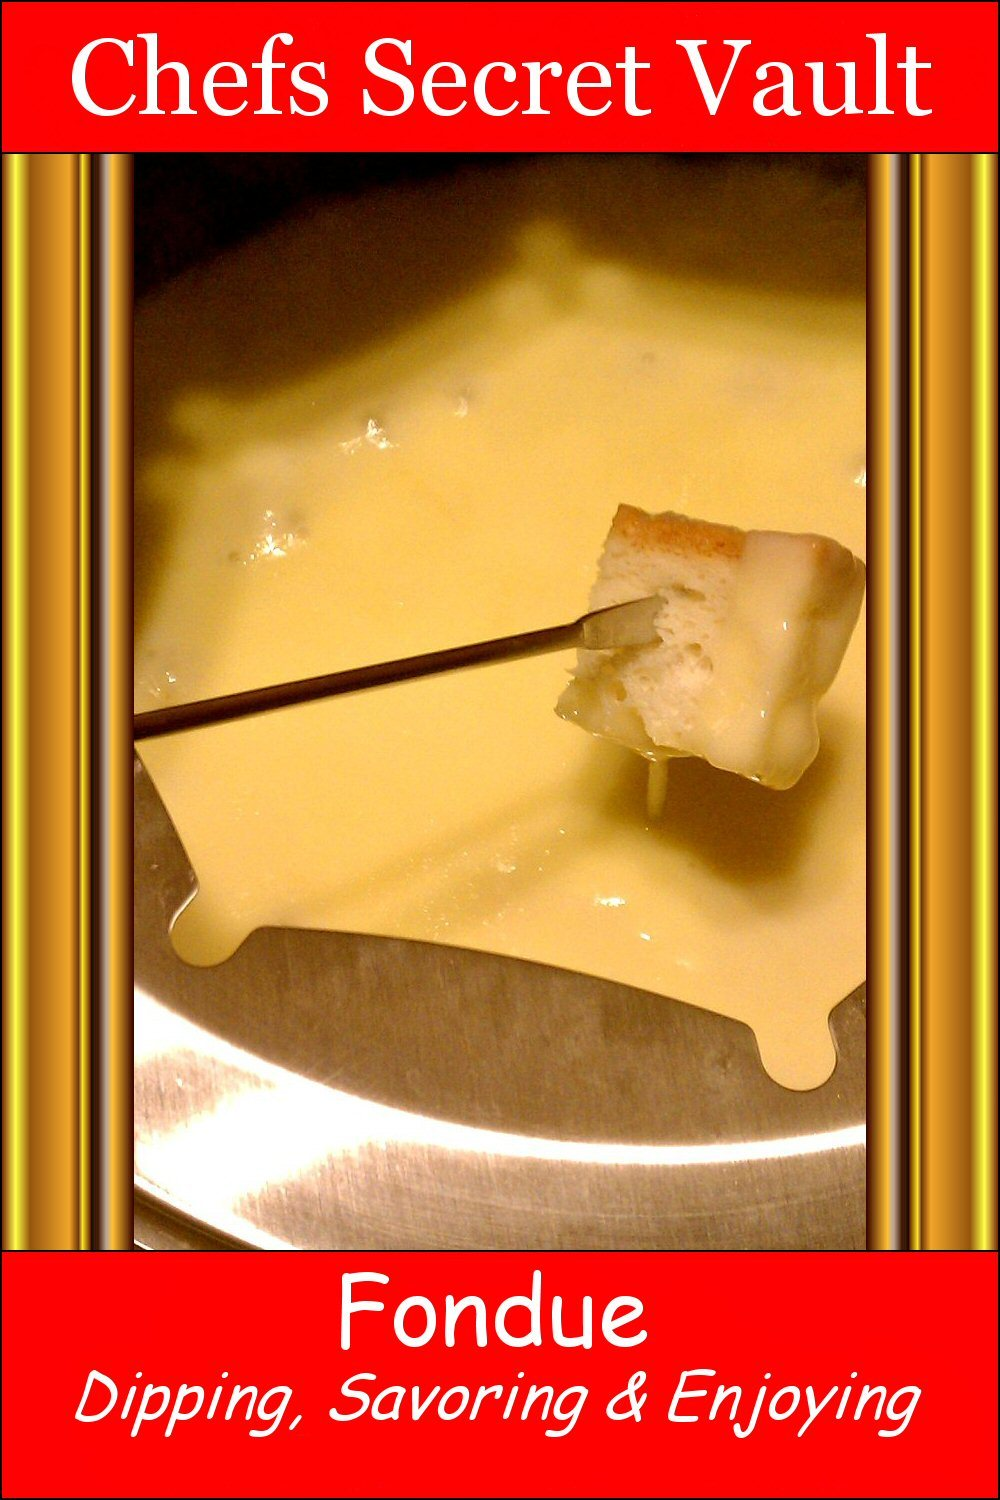 Fondue: Dipping, Savoring & Enjoying